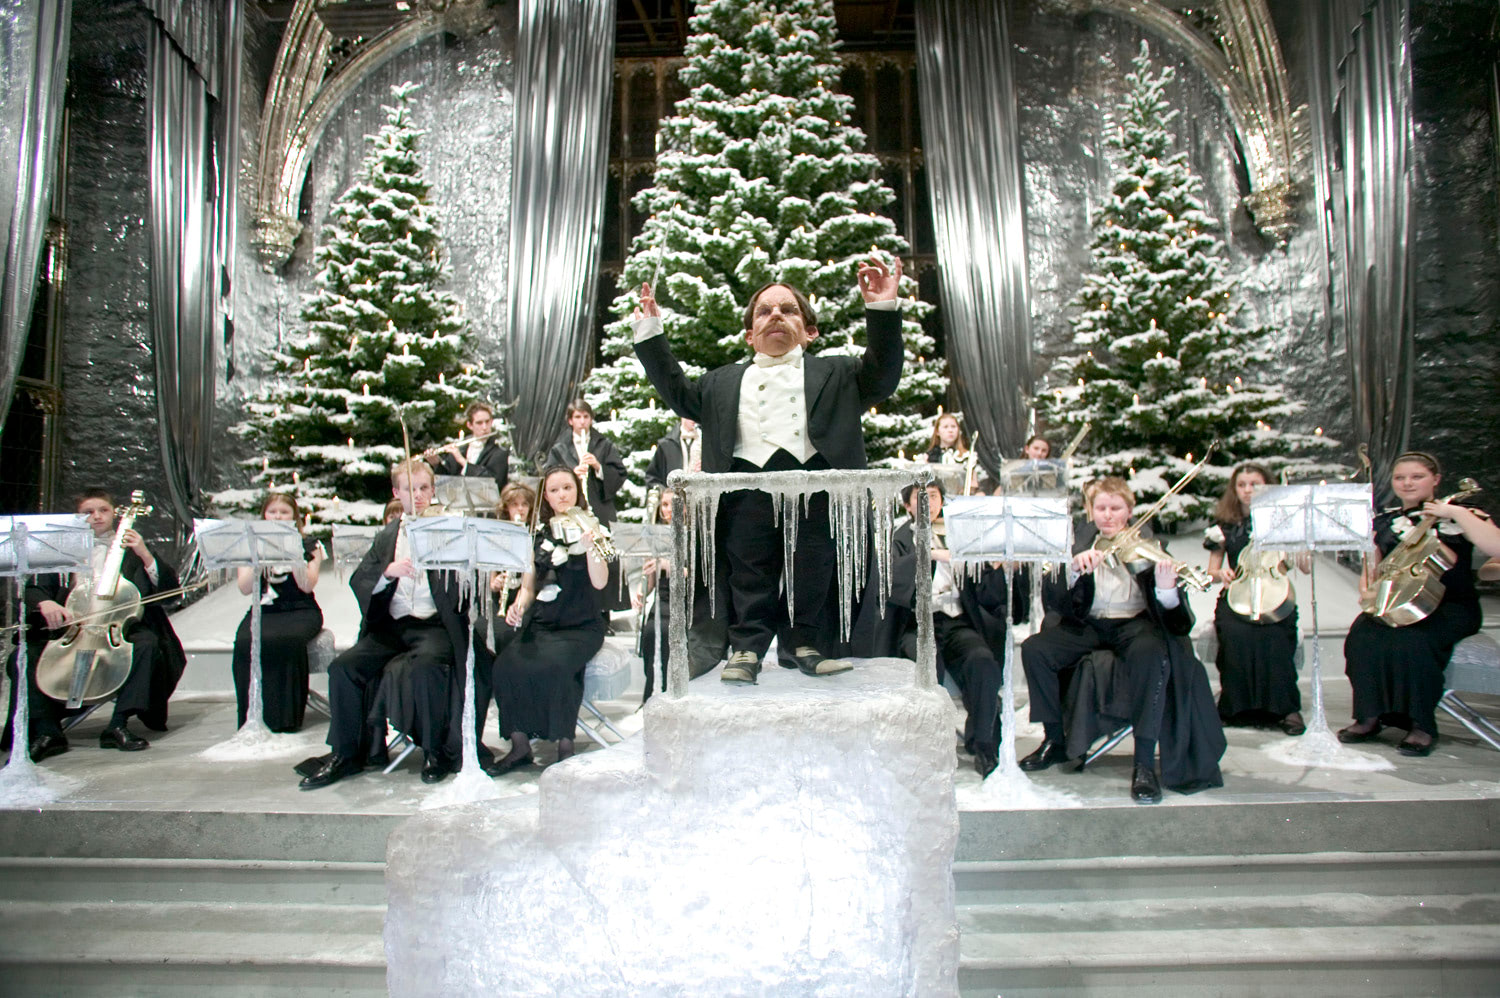 Filch conducts the Yule Ball band